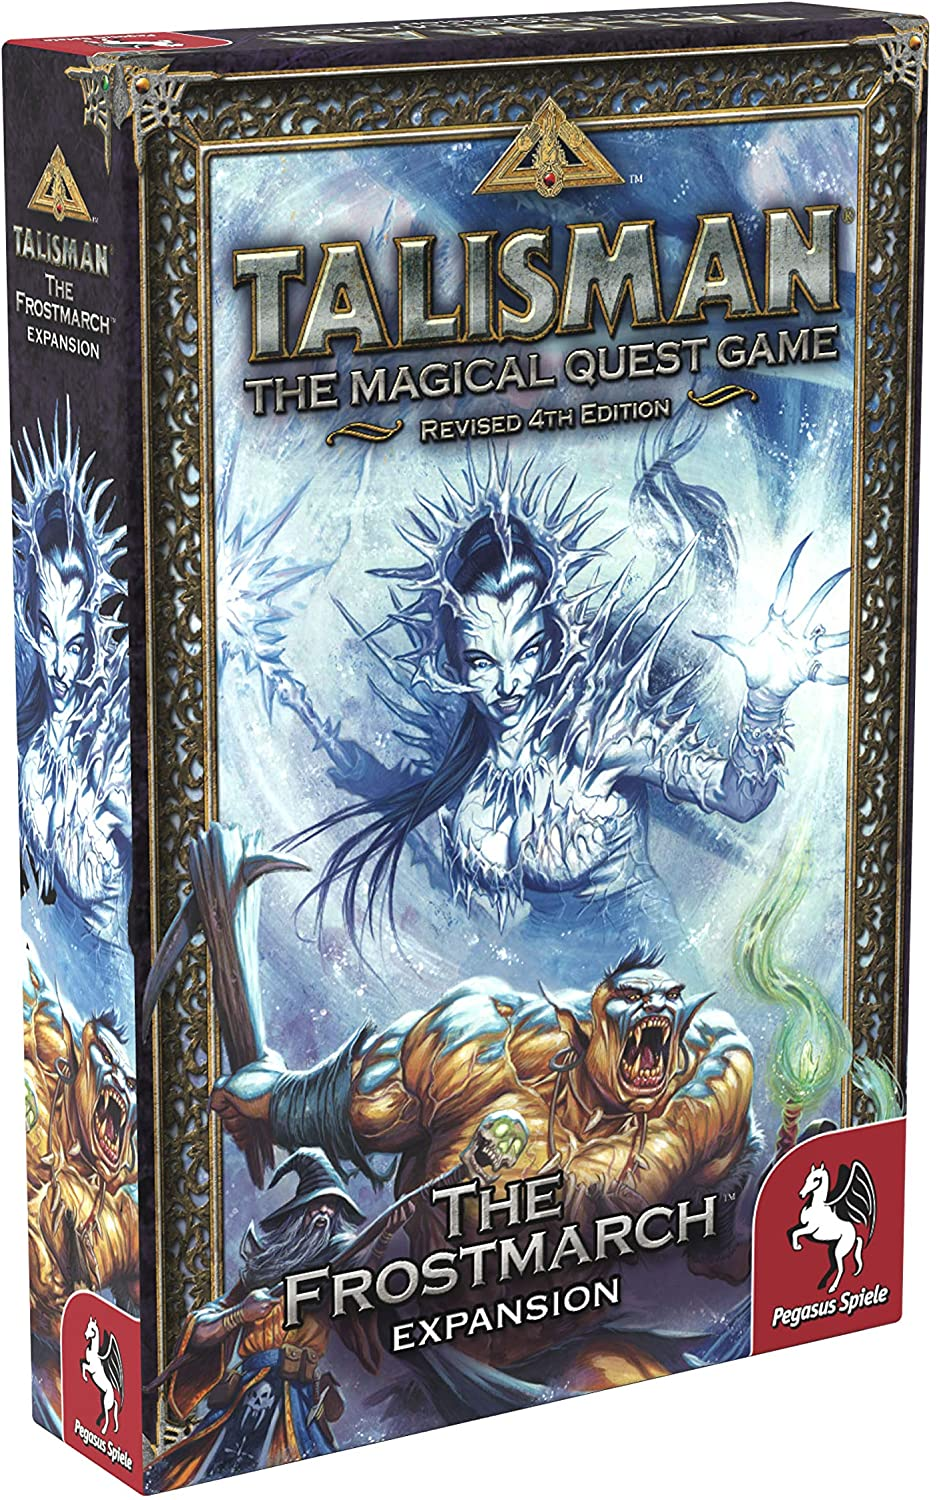 Talisman - The Frostmarch